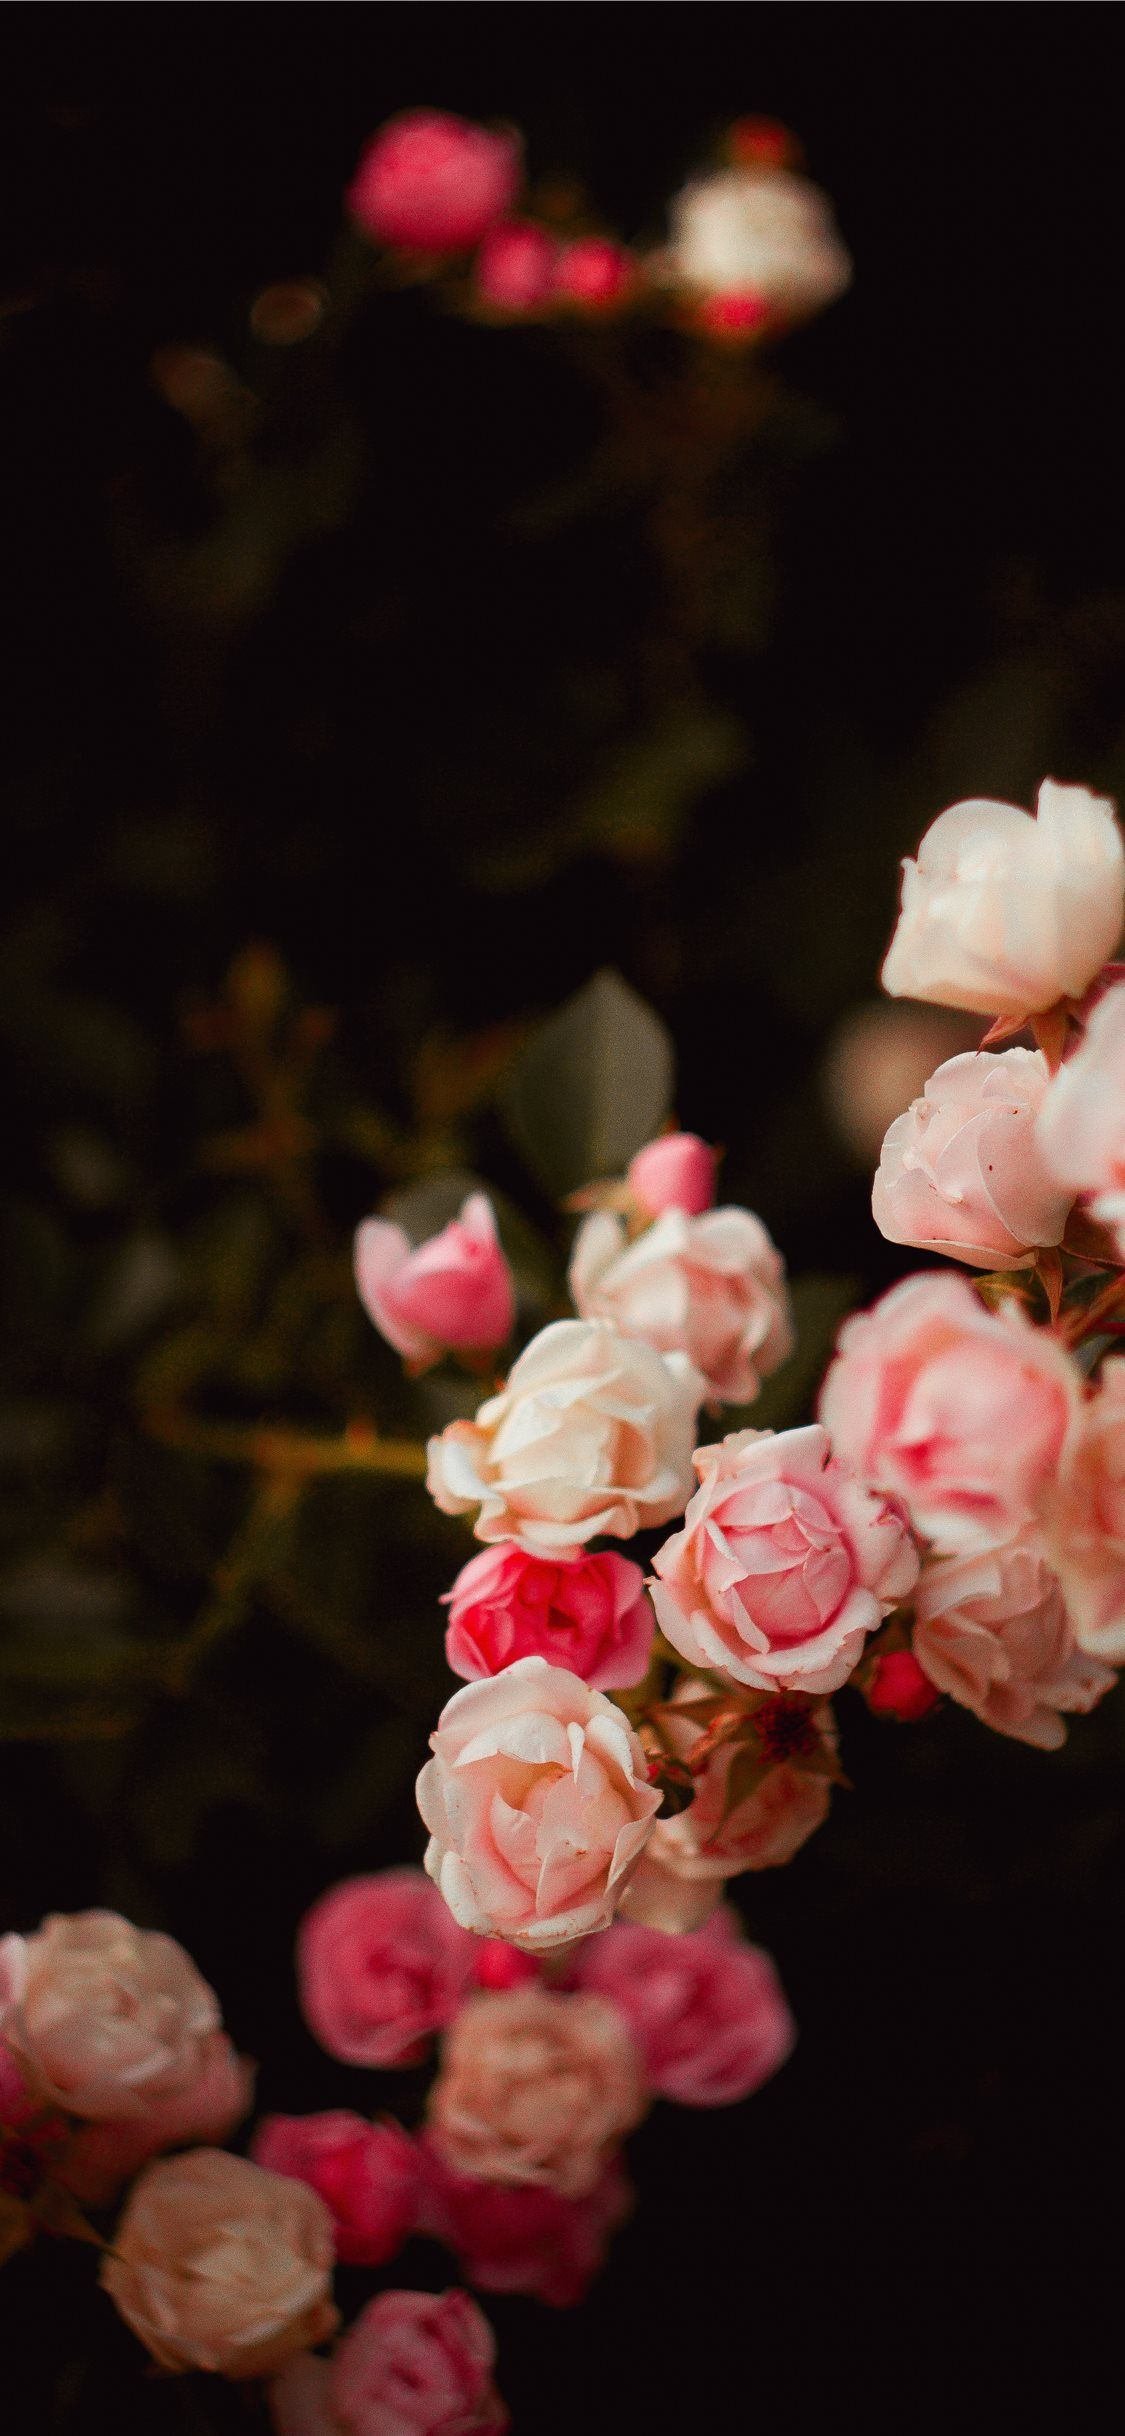 21 Pretty Wallpapers For Your New Iphone Xs Max Preppy Wallpapers Floral Wallpaper Iphone Preppy Wallpaper Floral Wallpaper